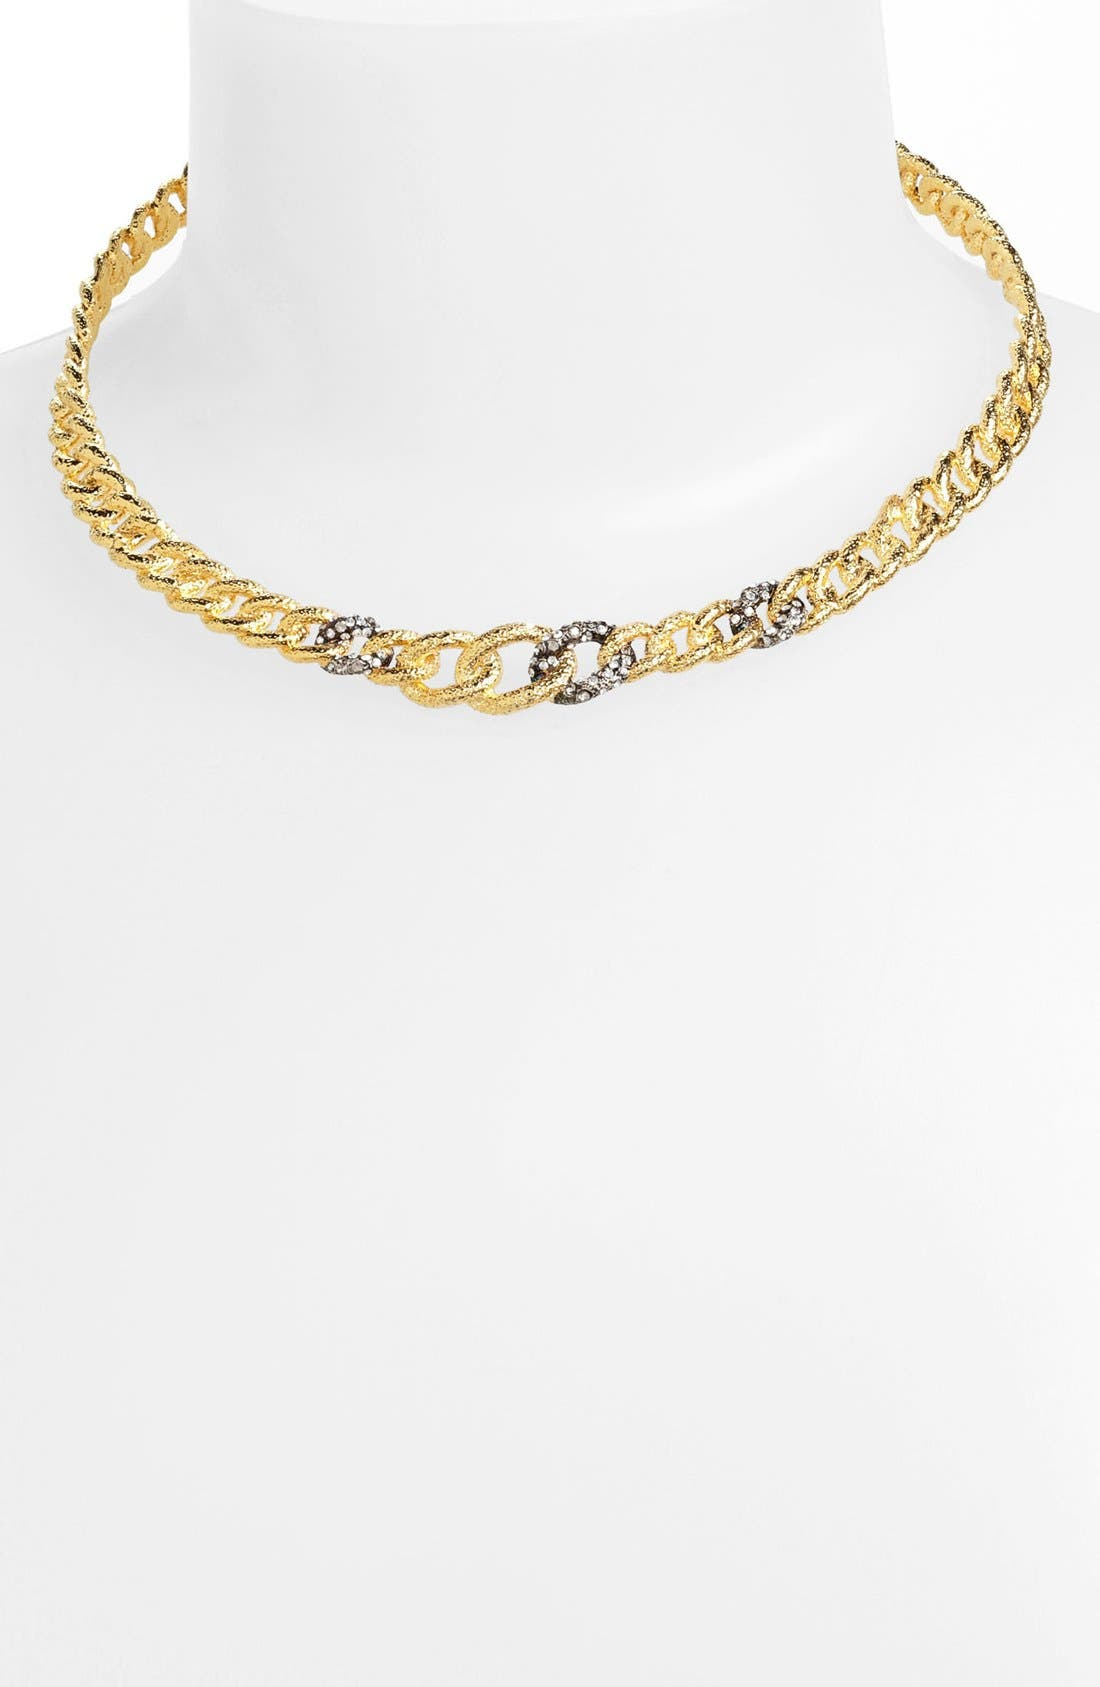 Main Image - Alexis Bittar 'Elements - Cordova' Link Collar Necklace